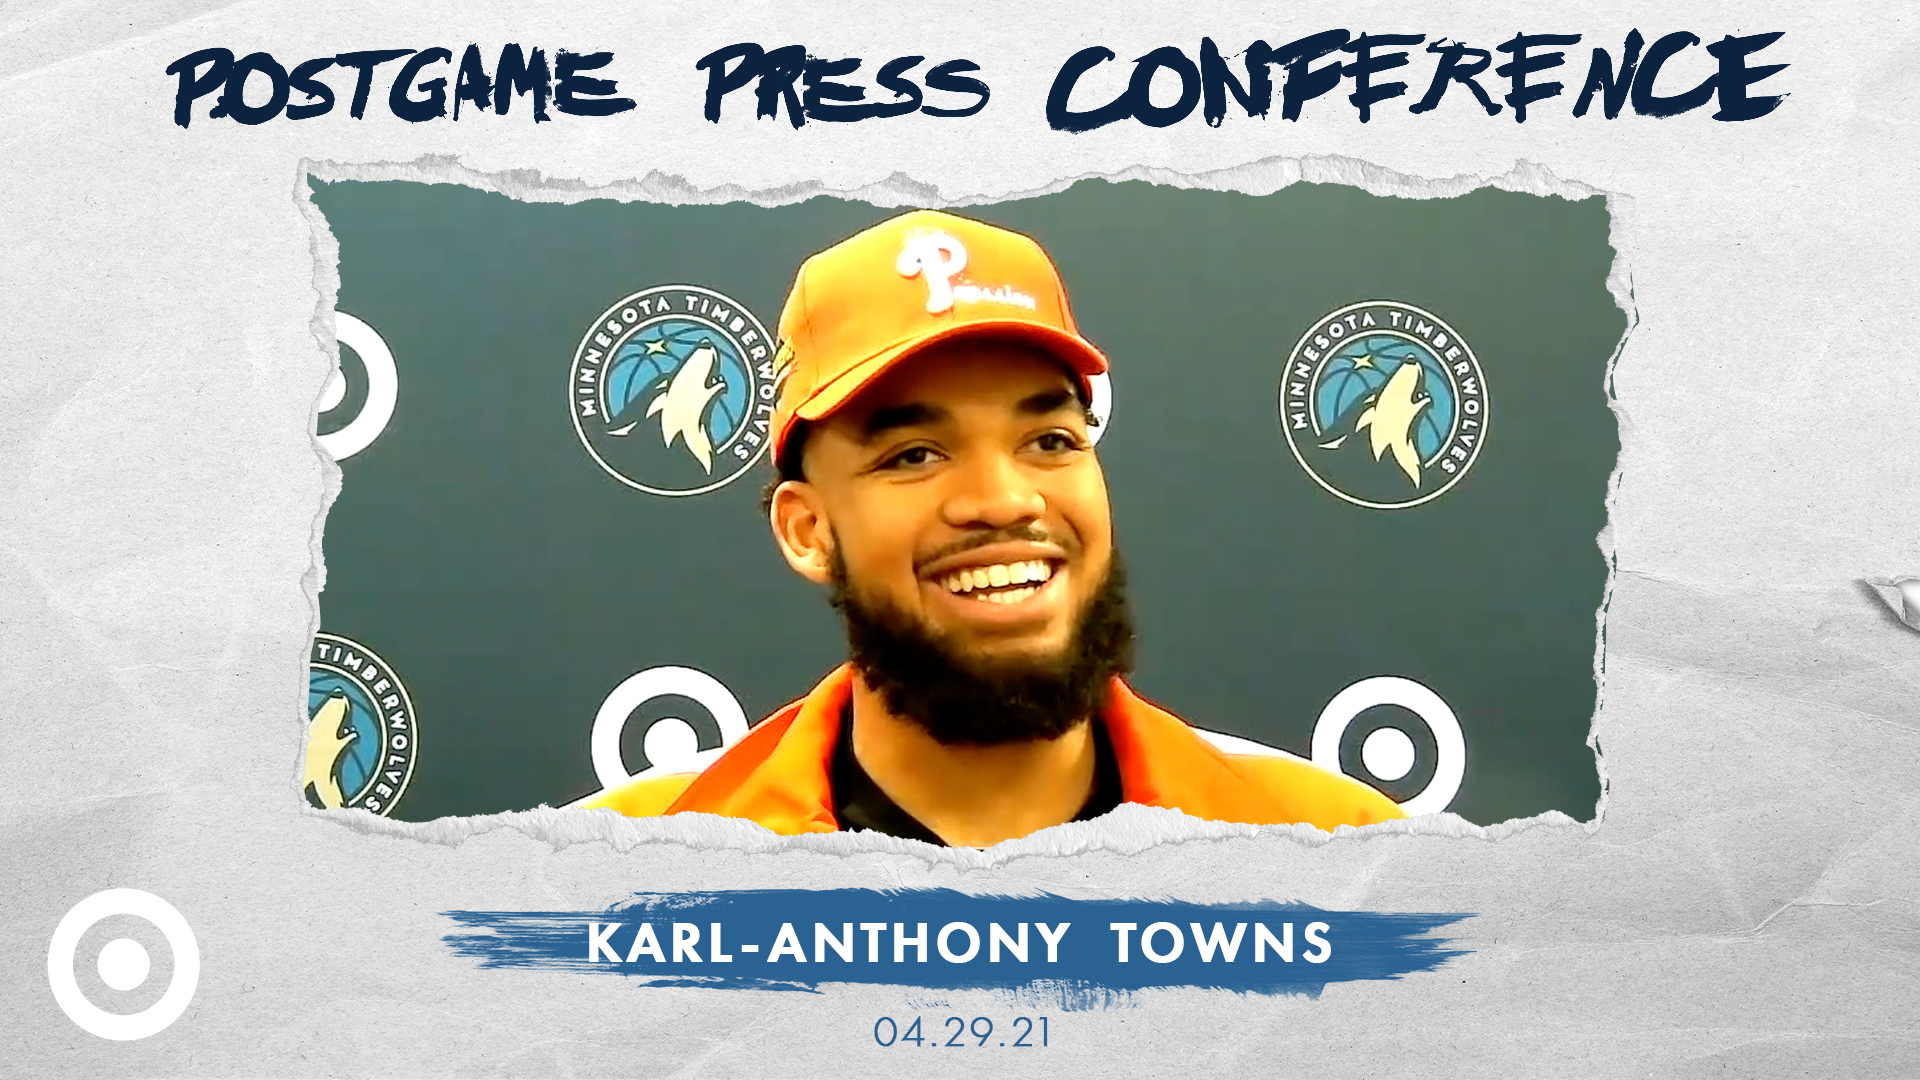 Karl-Anthony Towns Postgame Press Conference - April 29, 2021